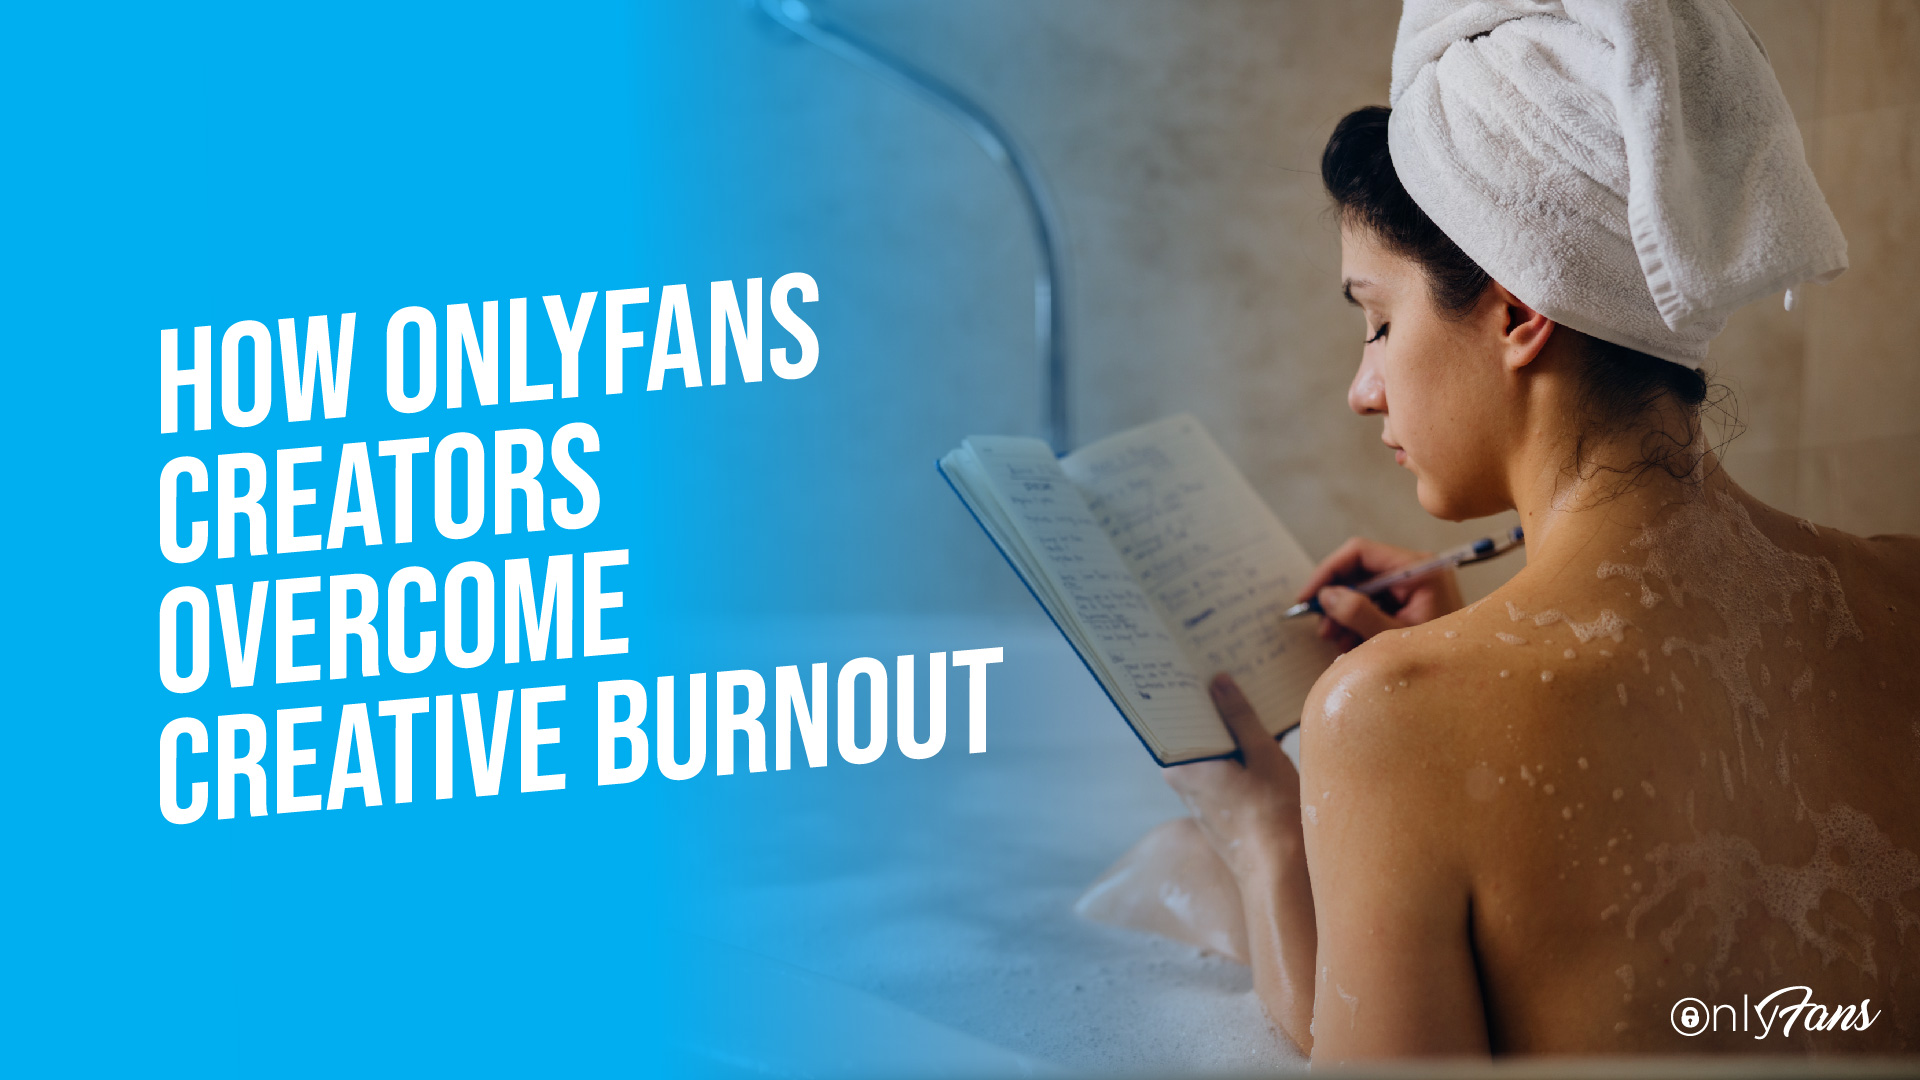 how onlyfans creators overcome creative burnout